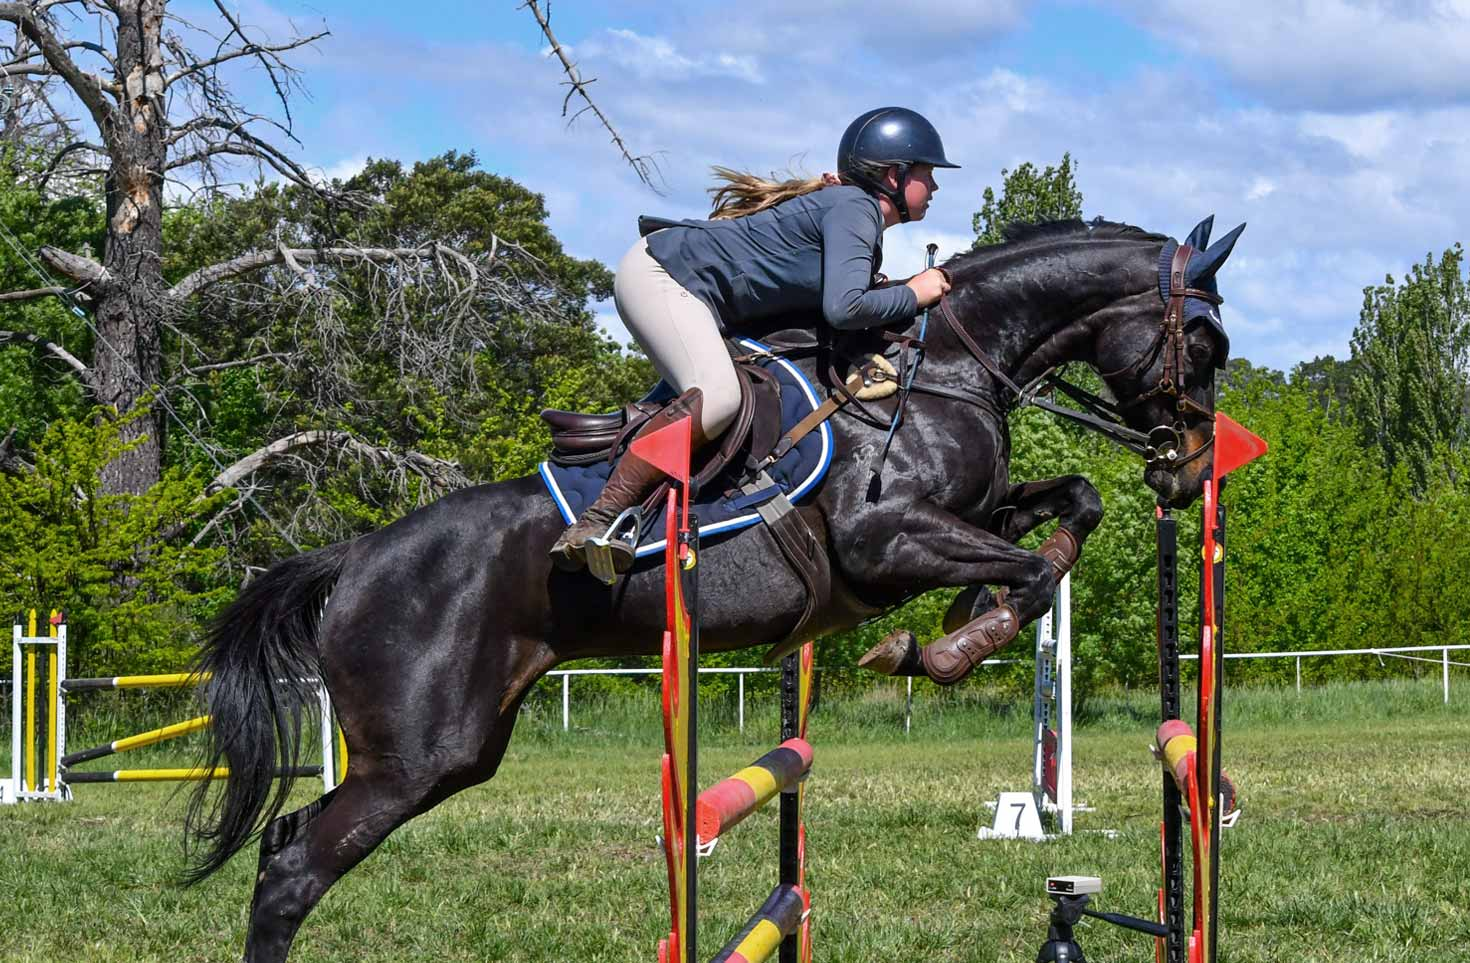 Success for Charly Robinson-Smith in Canberra